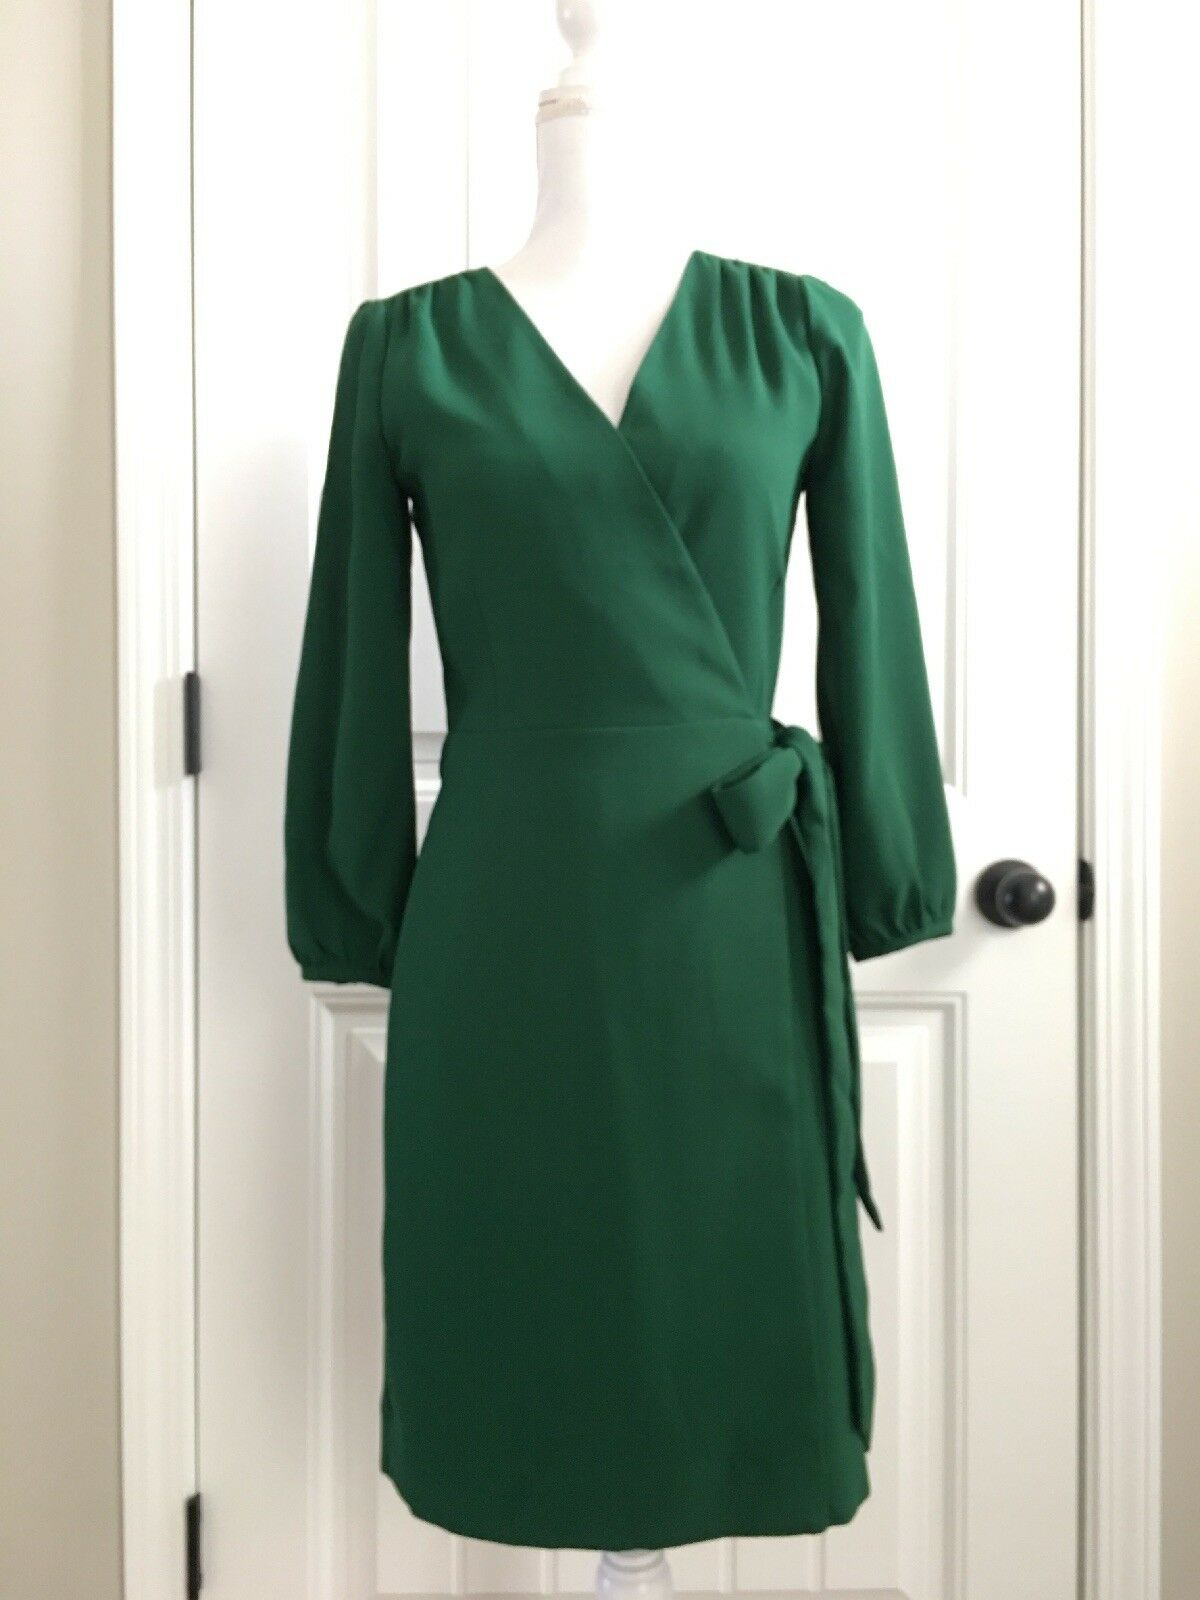 New J Crew Wrap Dress in 365 Crepe Grün Sz 00 H6292